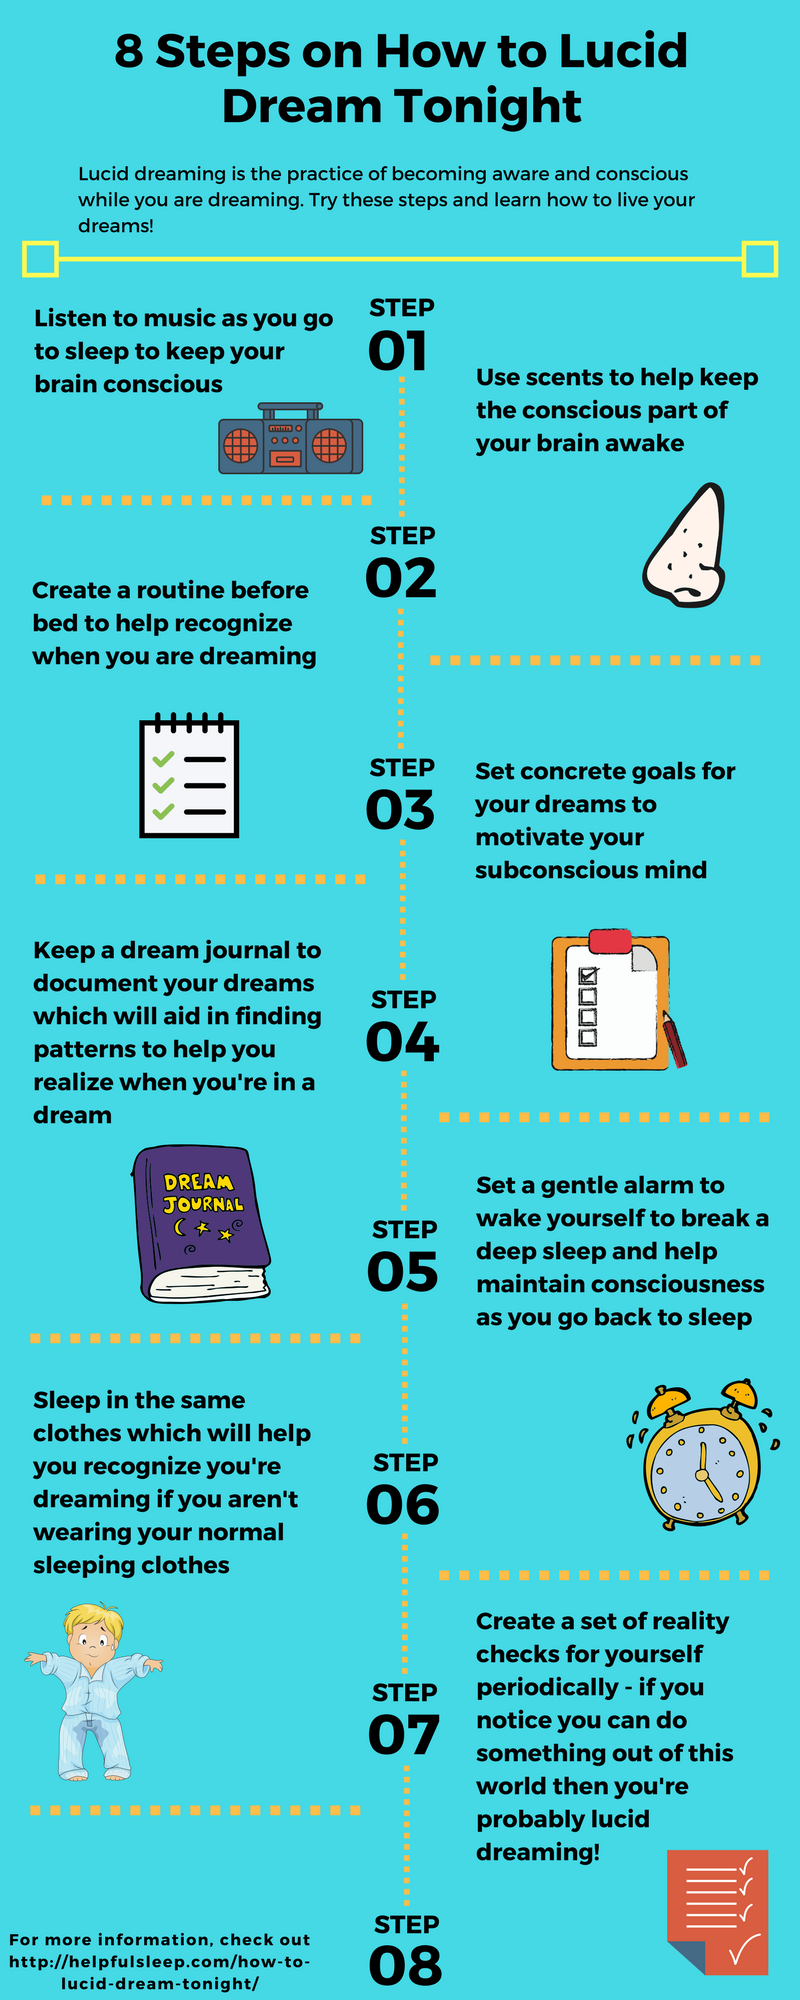 8 Steps on How to Lucid Dream Tonight